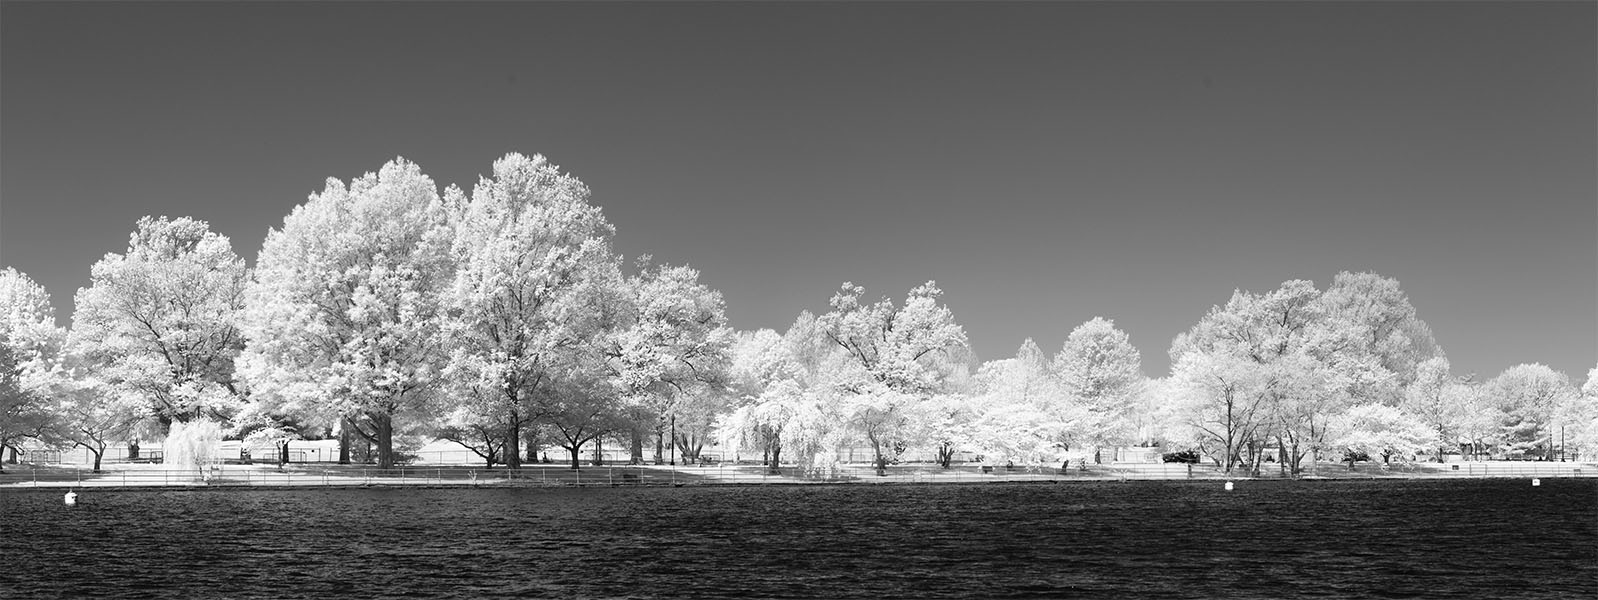 Water and Trees in Infrared